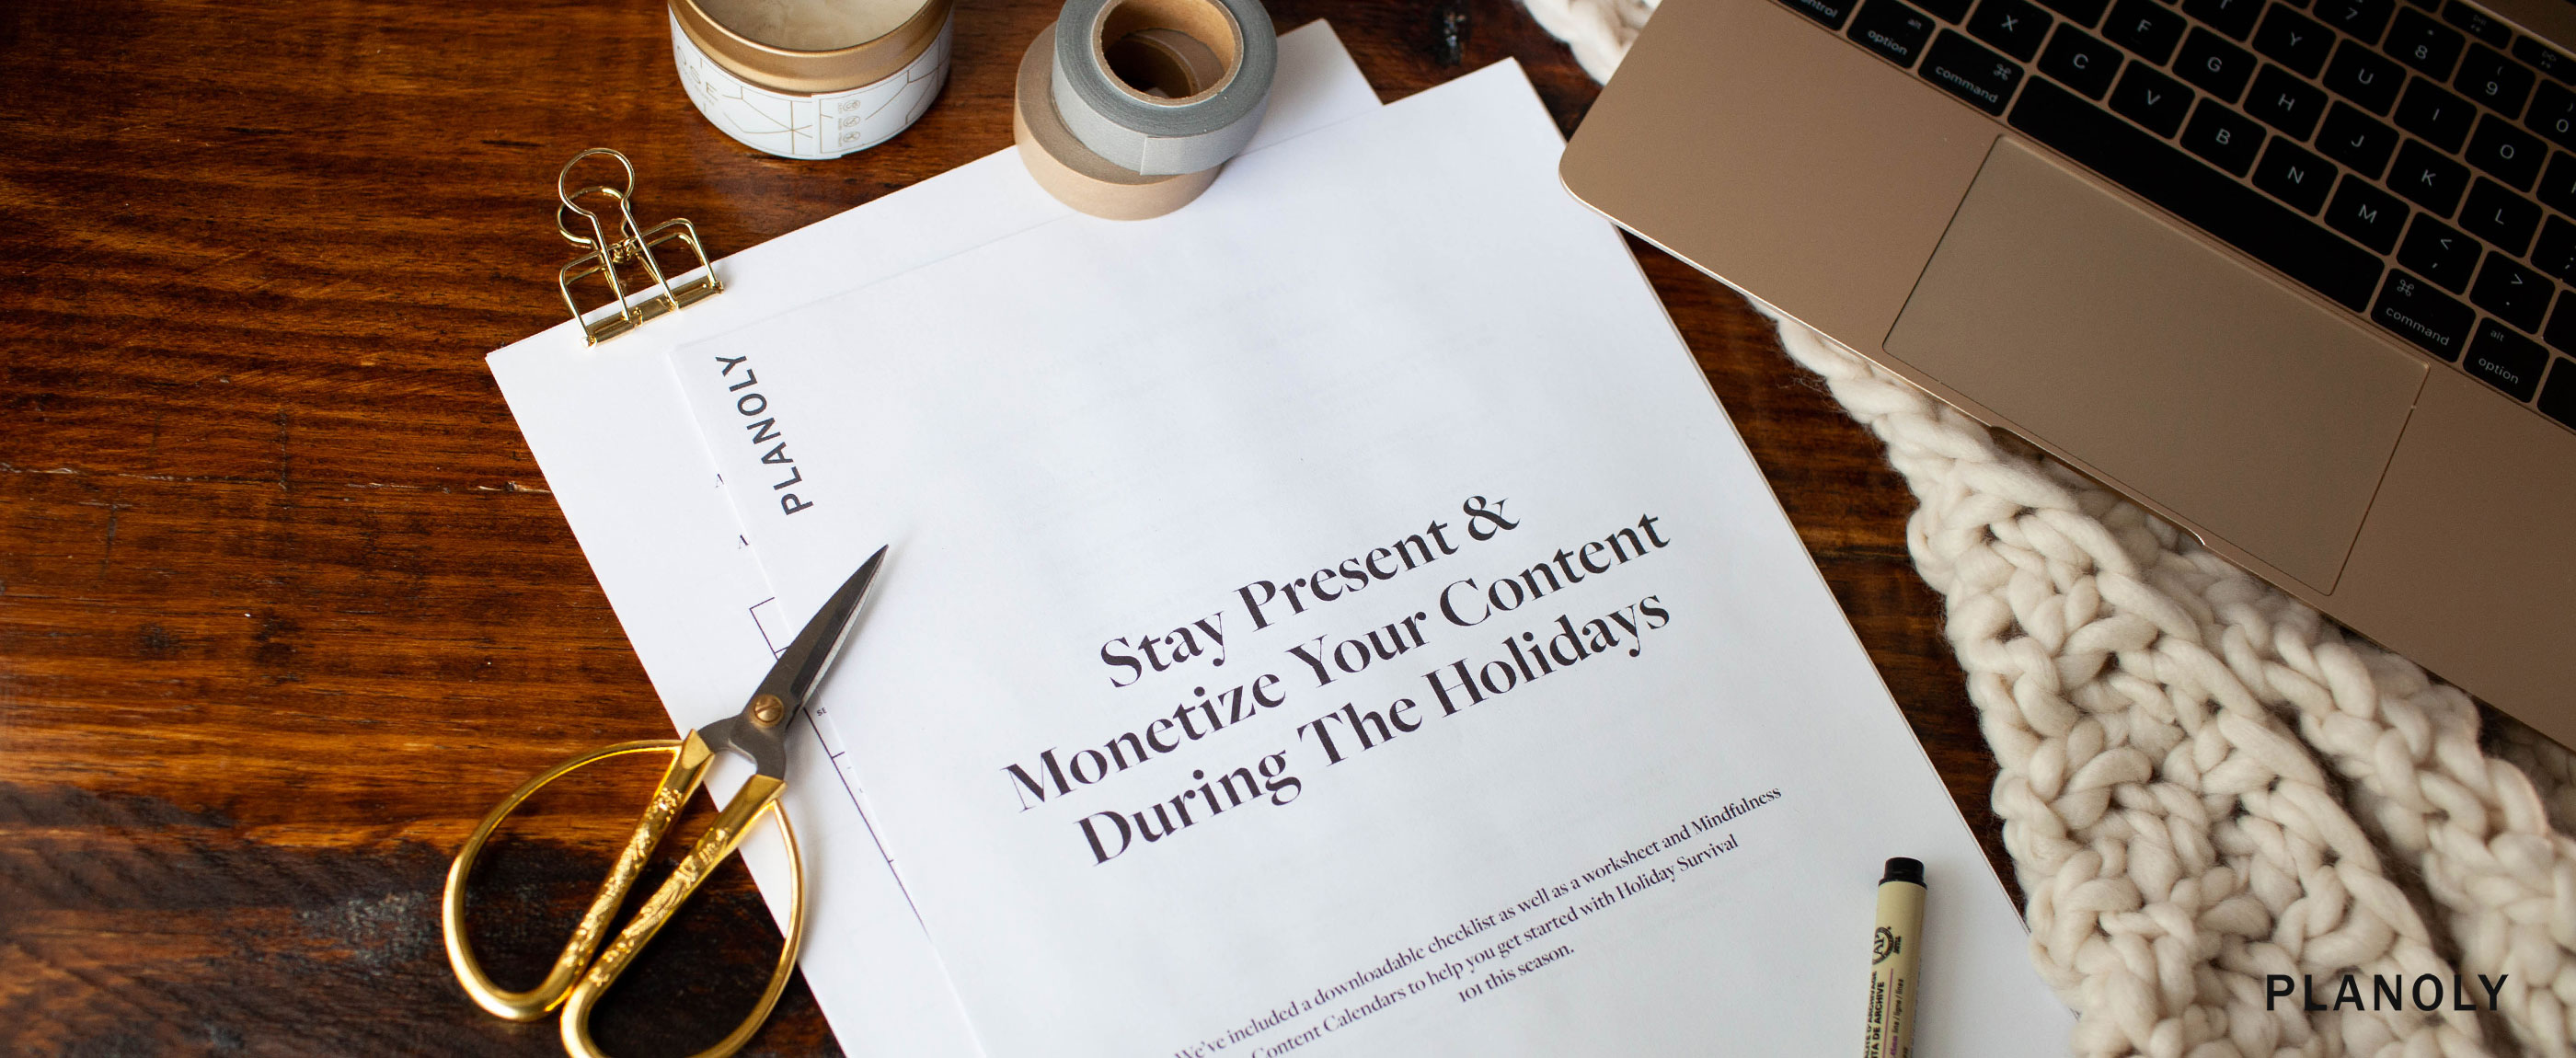 PLANOLY Holiday Guide: Staying Present and Monetizing Your Content